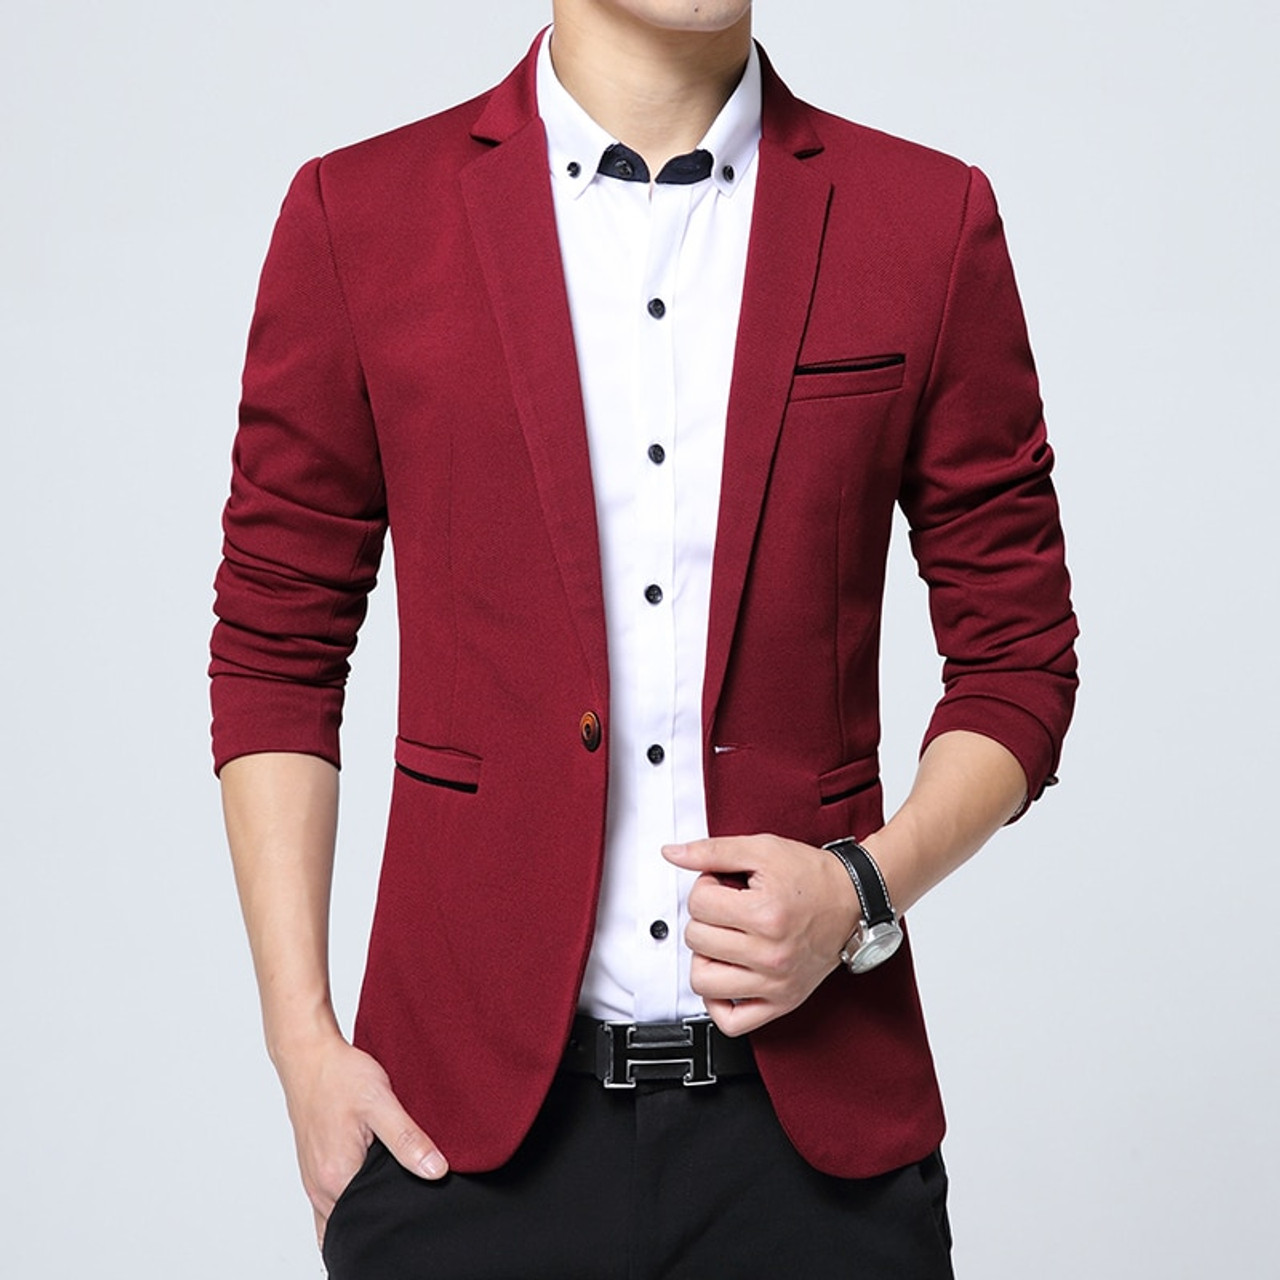 c890f779f42e Korean Suits For Men Slim Fit Casual Business Blazer Wedding Dress Blazer  Jacket Mens Formal Jacket ...